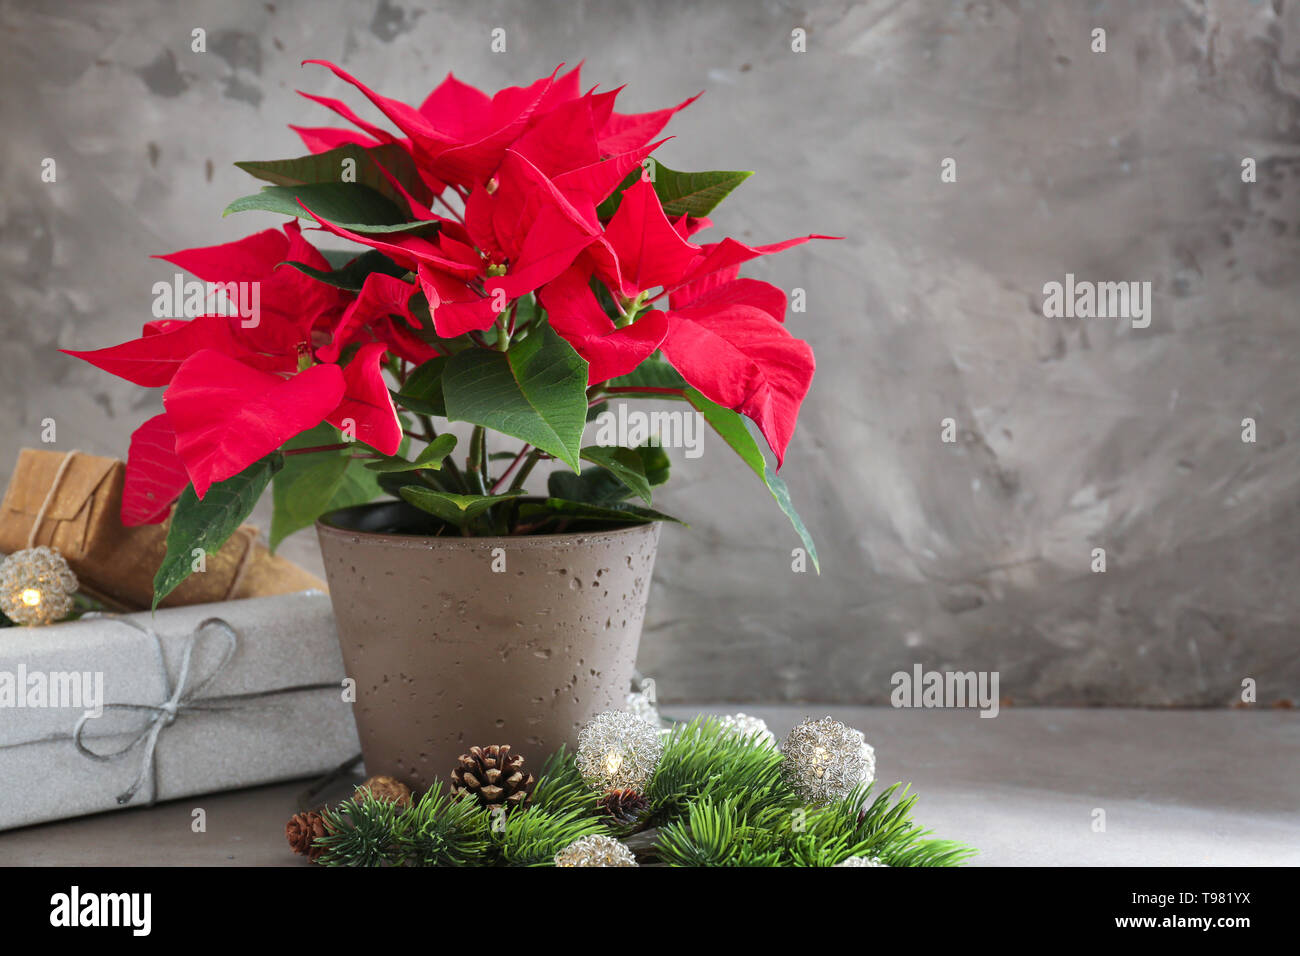 Christmas Flower Poinsettia With Gift Boxes On Grey Table Stock Photo Alamy